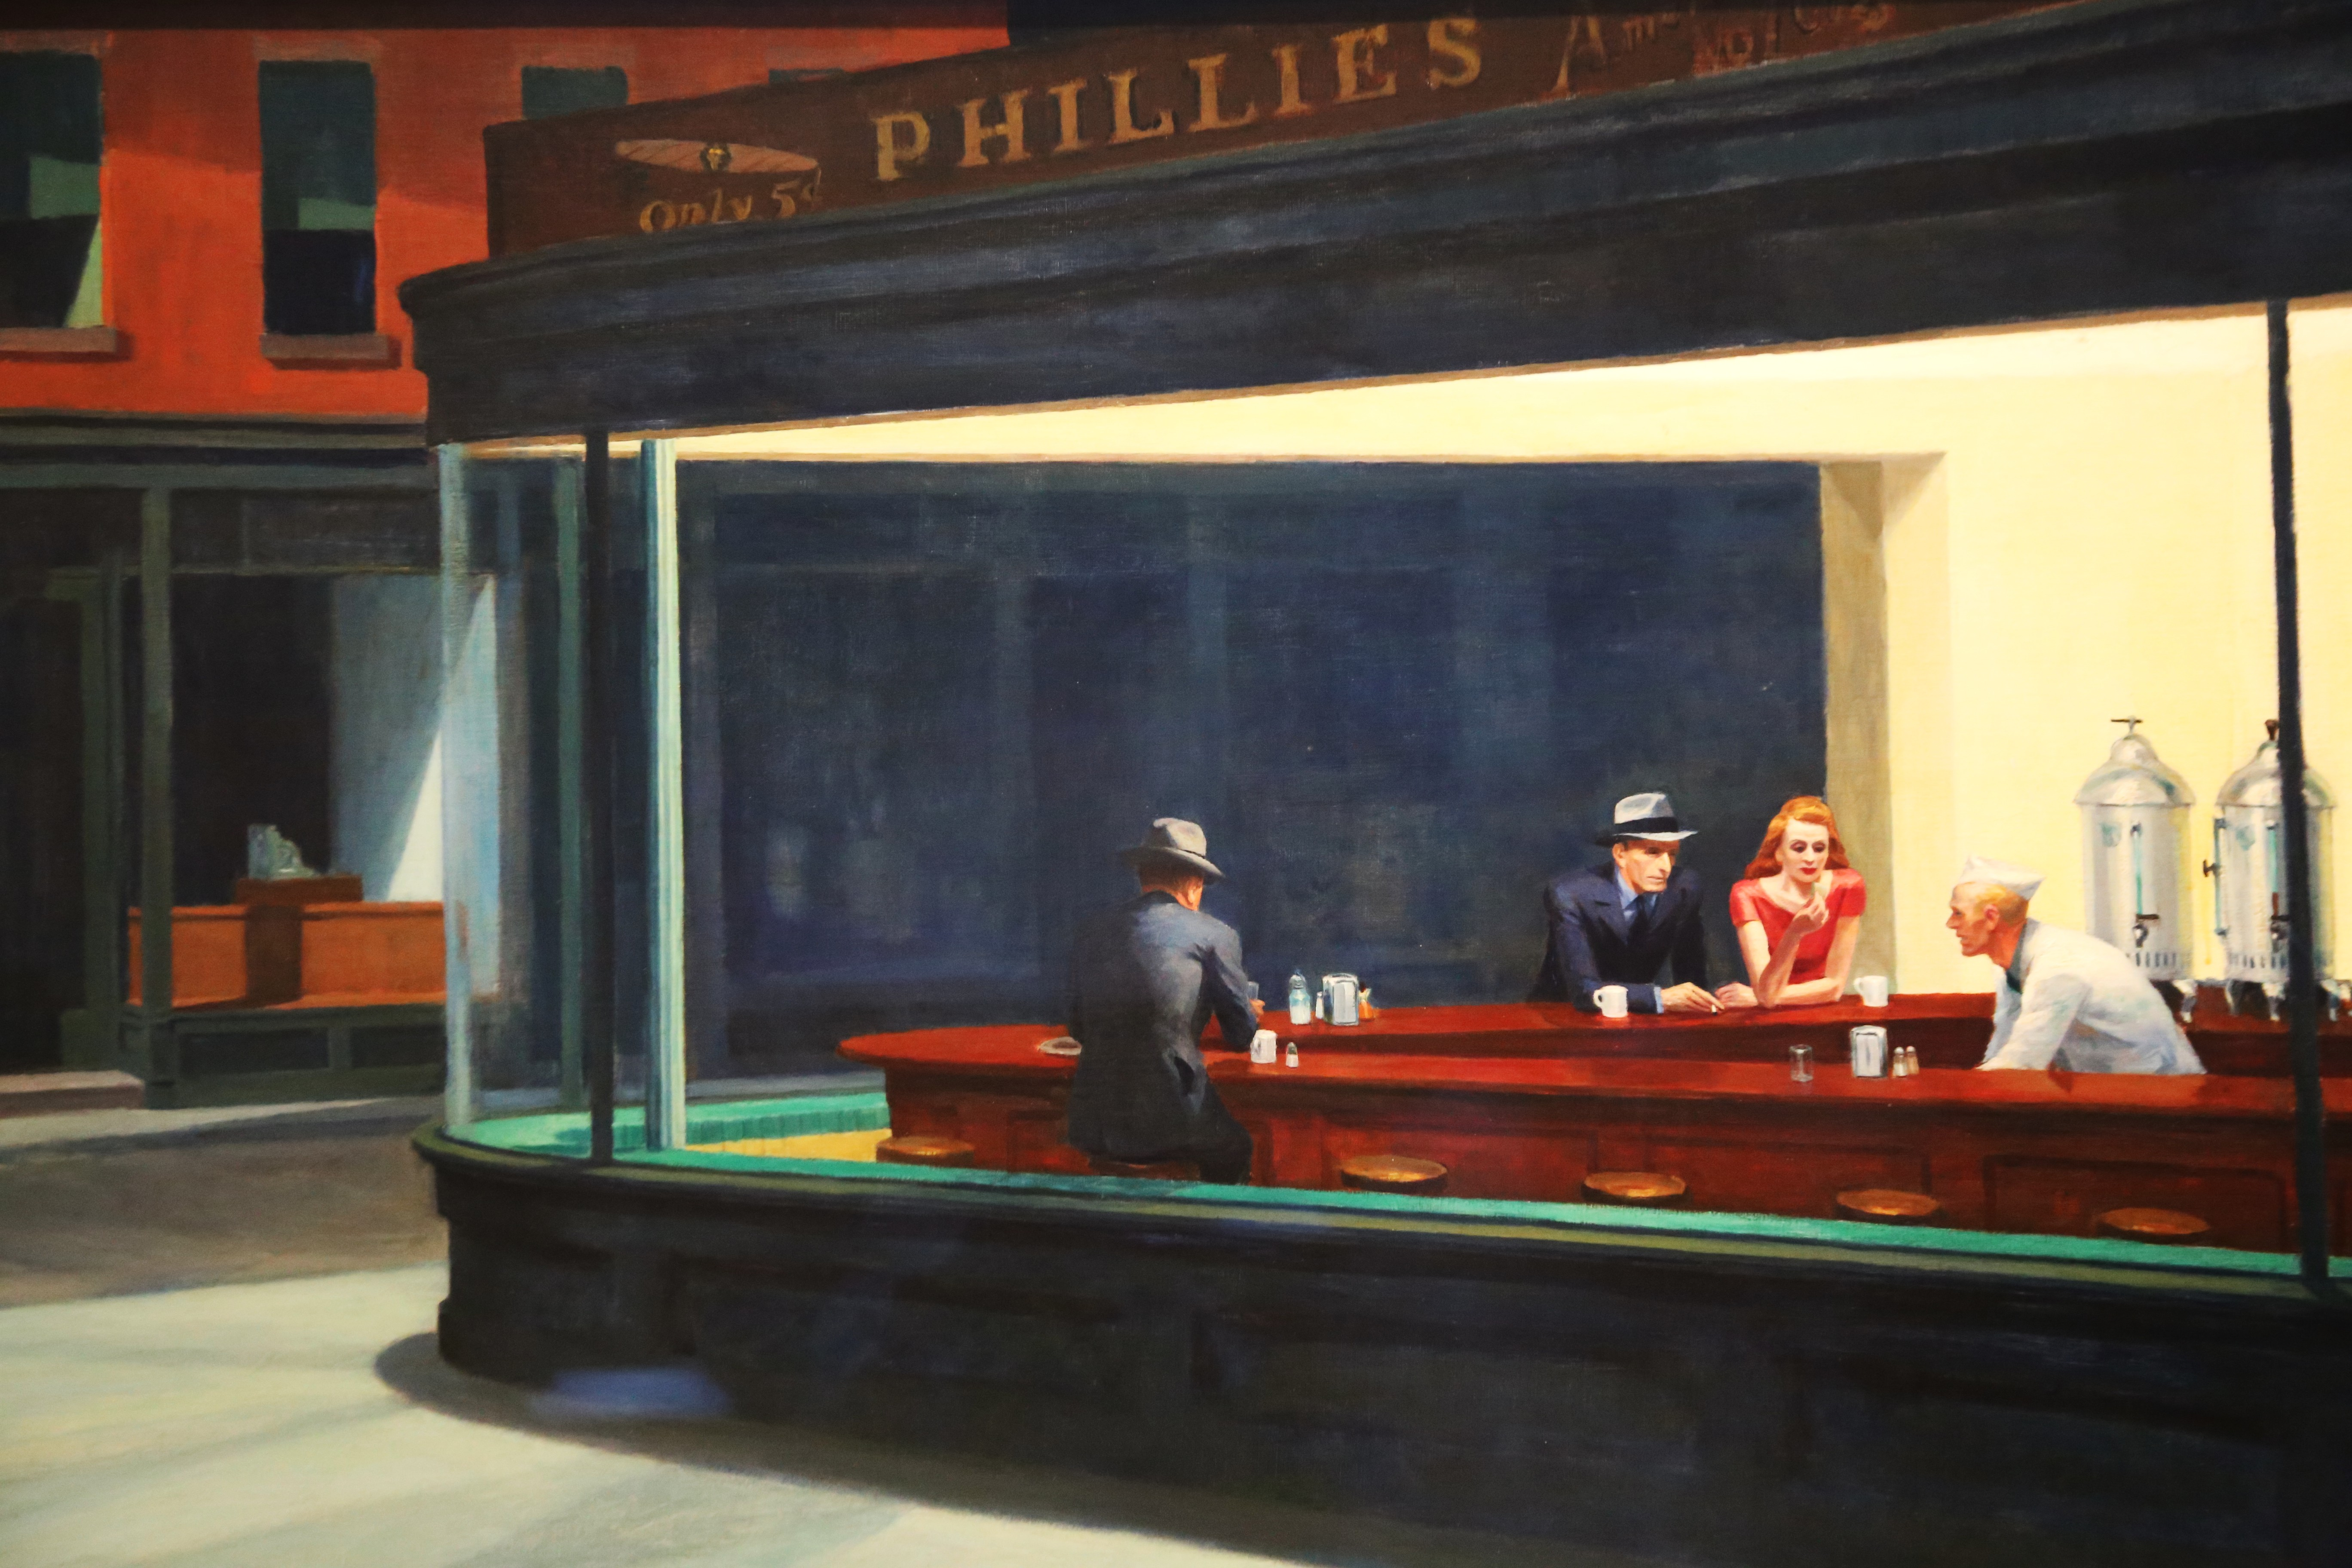 painting nighthawks by edward hopper essay Nighthawks, 1942 by edward hopper is printed with premium inks for brilliant color and then hand-stretched over museum quality stretcher bars 60-day money back guarantee and free return shipping.